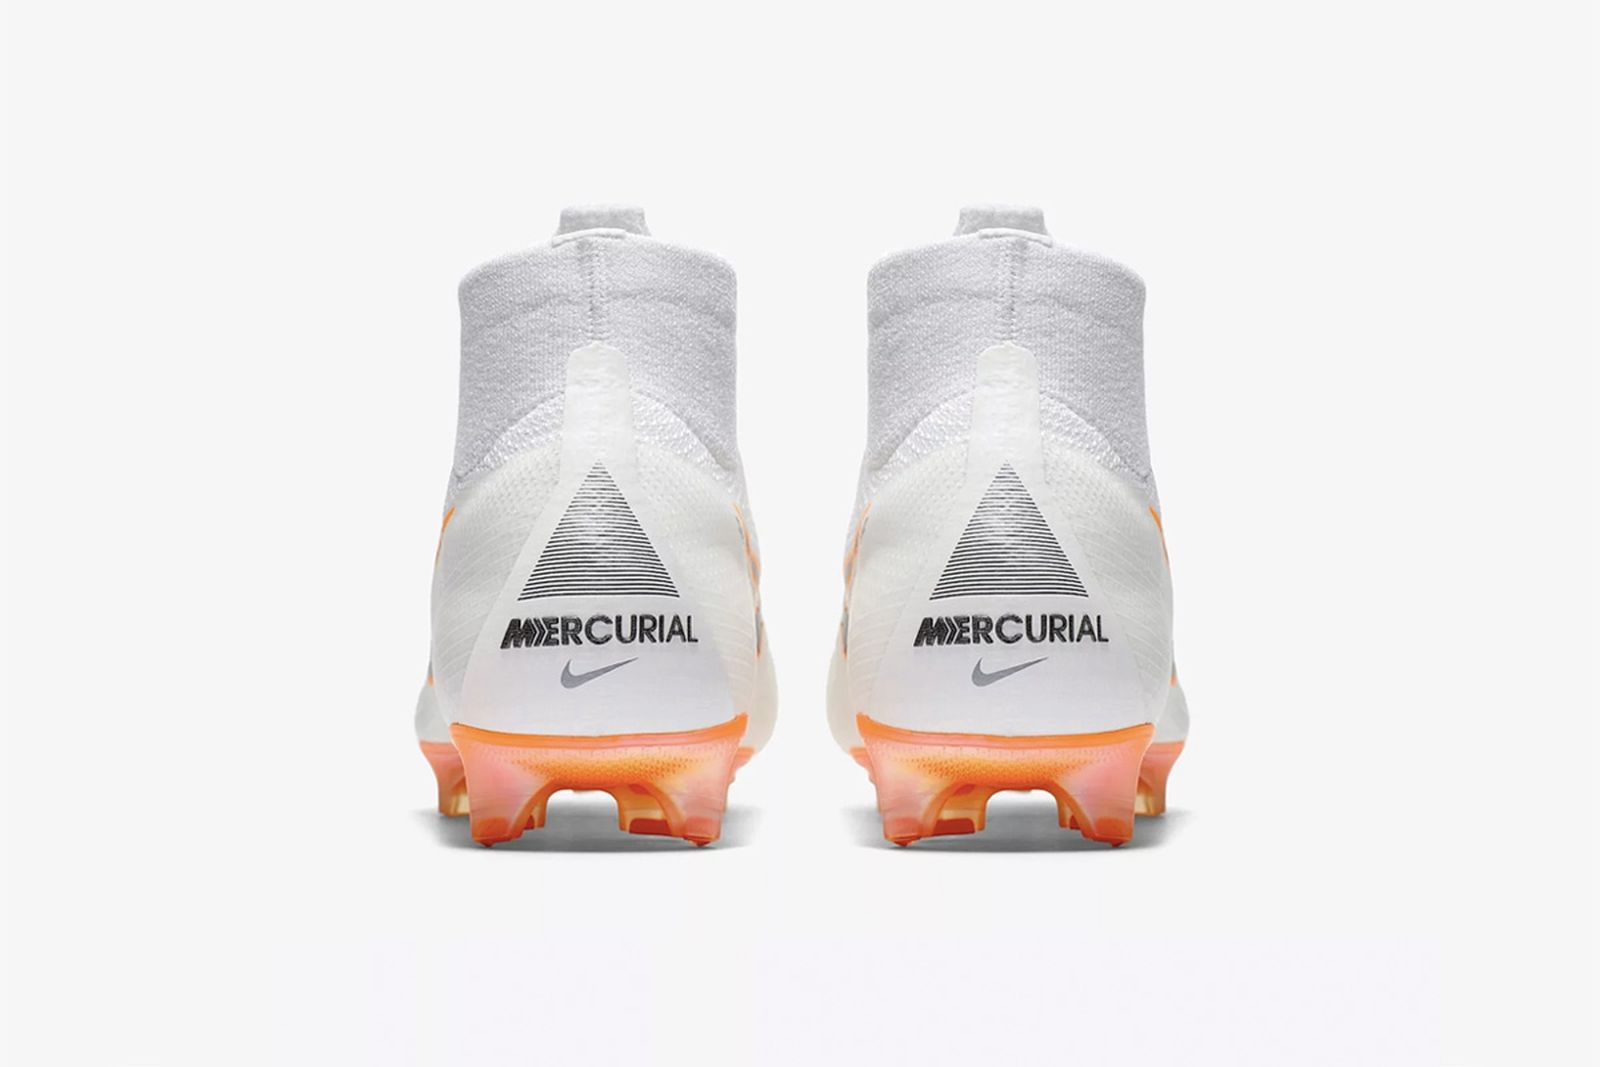 world cup 2018 best football boots ranking 2018 FIFA World Cup Adidas New Balance